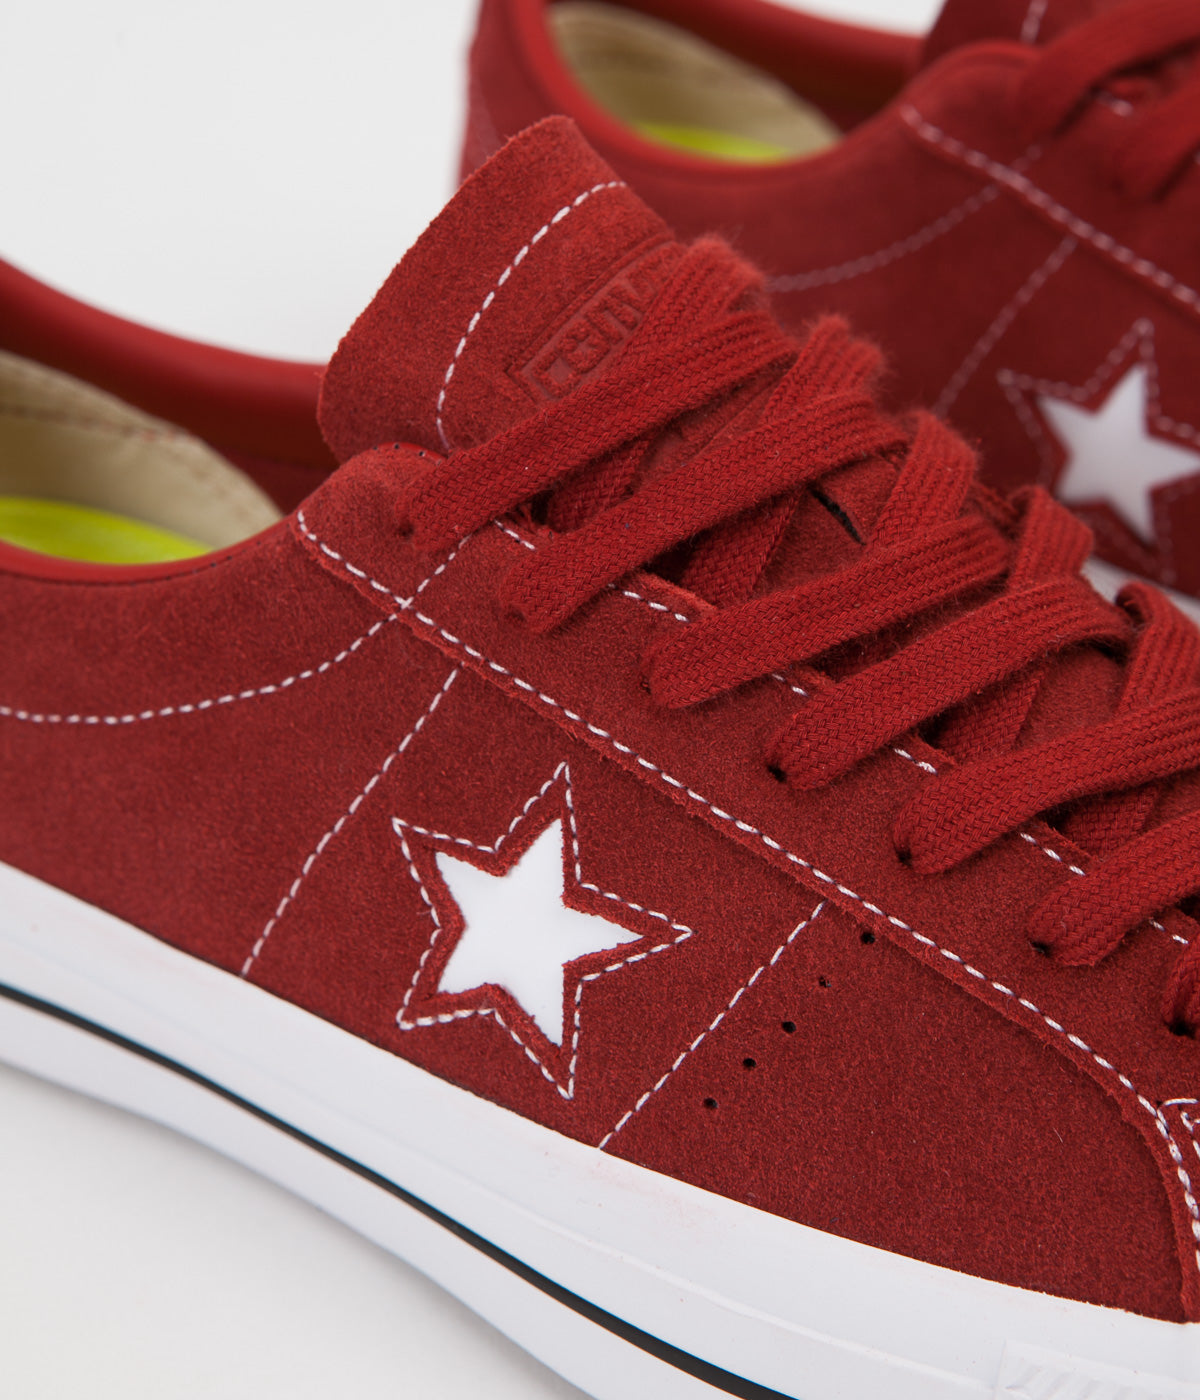 8a899e724bf805 ... hot converse one star pro ox shoes terra red terra red 29427 88b87  reduced converse one star pro terra red white ...